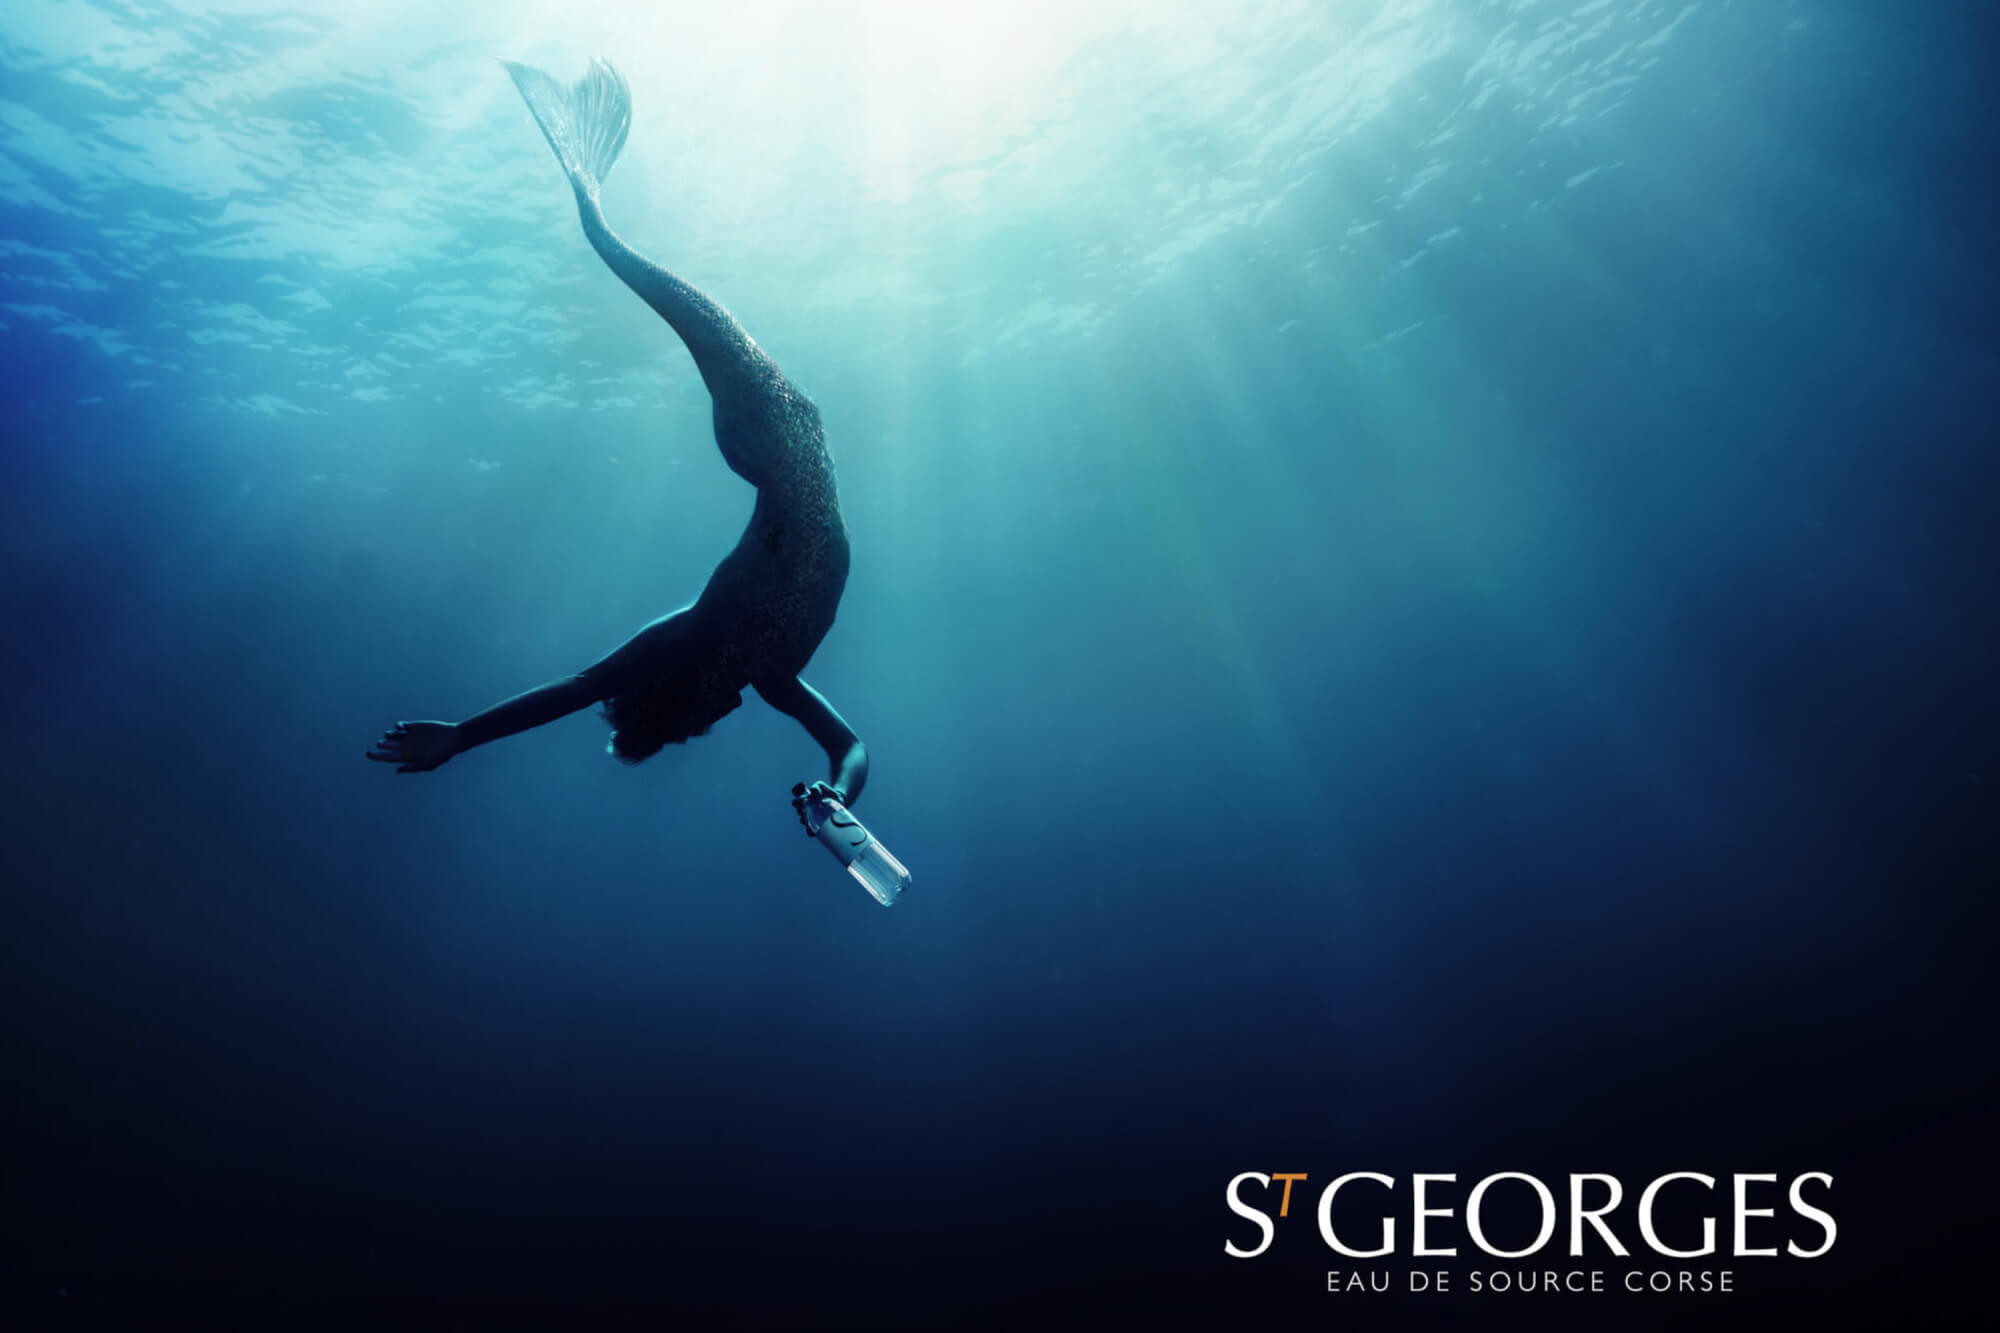 THE NEW VISUAL WATER CAMPAIGN ST GEORGES APPEALS TO INTERNATIONAL DIVE CHAMPIONS IN APNEA AND UNVEILS A POETIC AND TROUBLE MERMAN